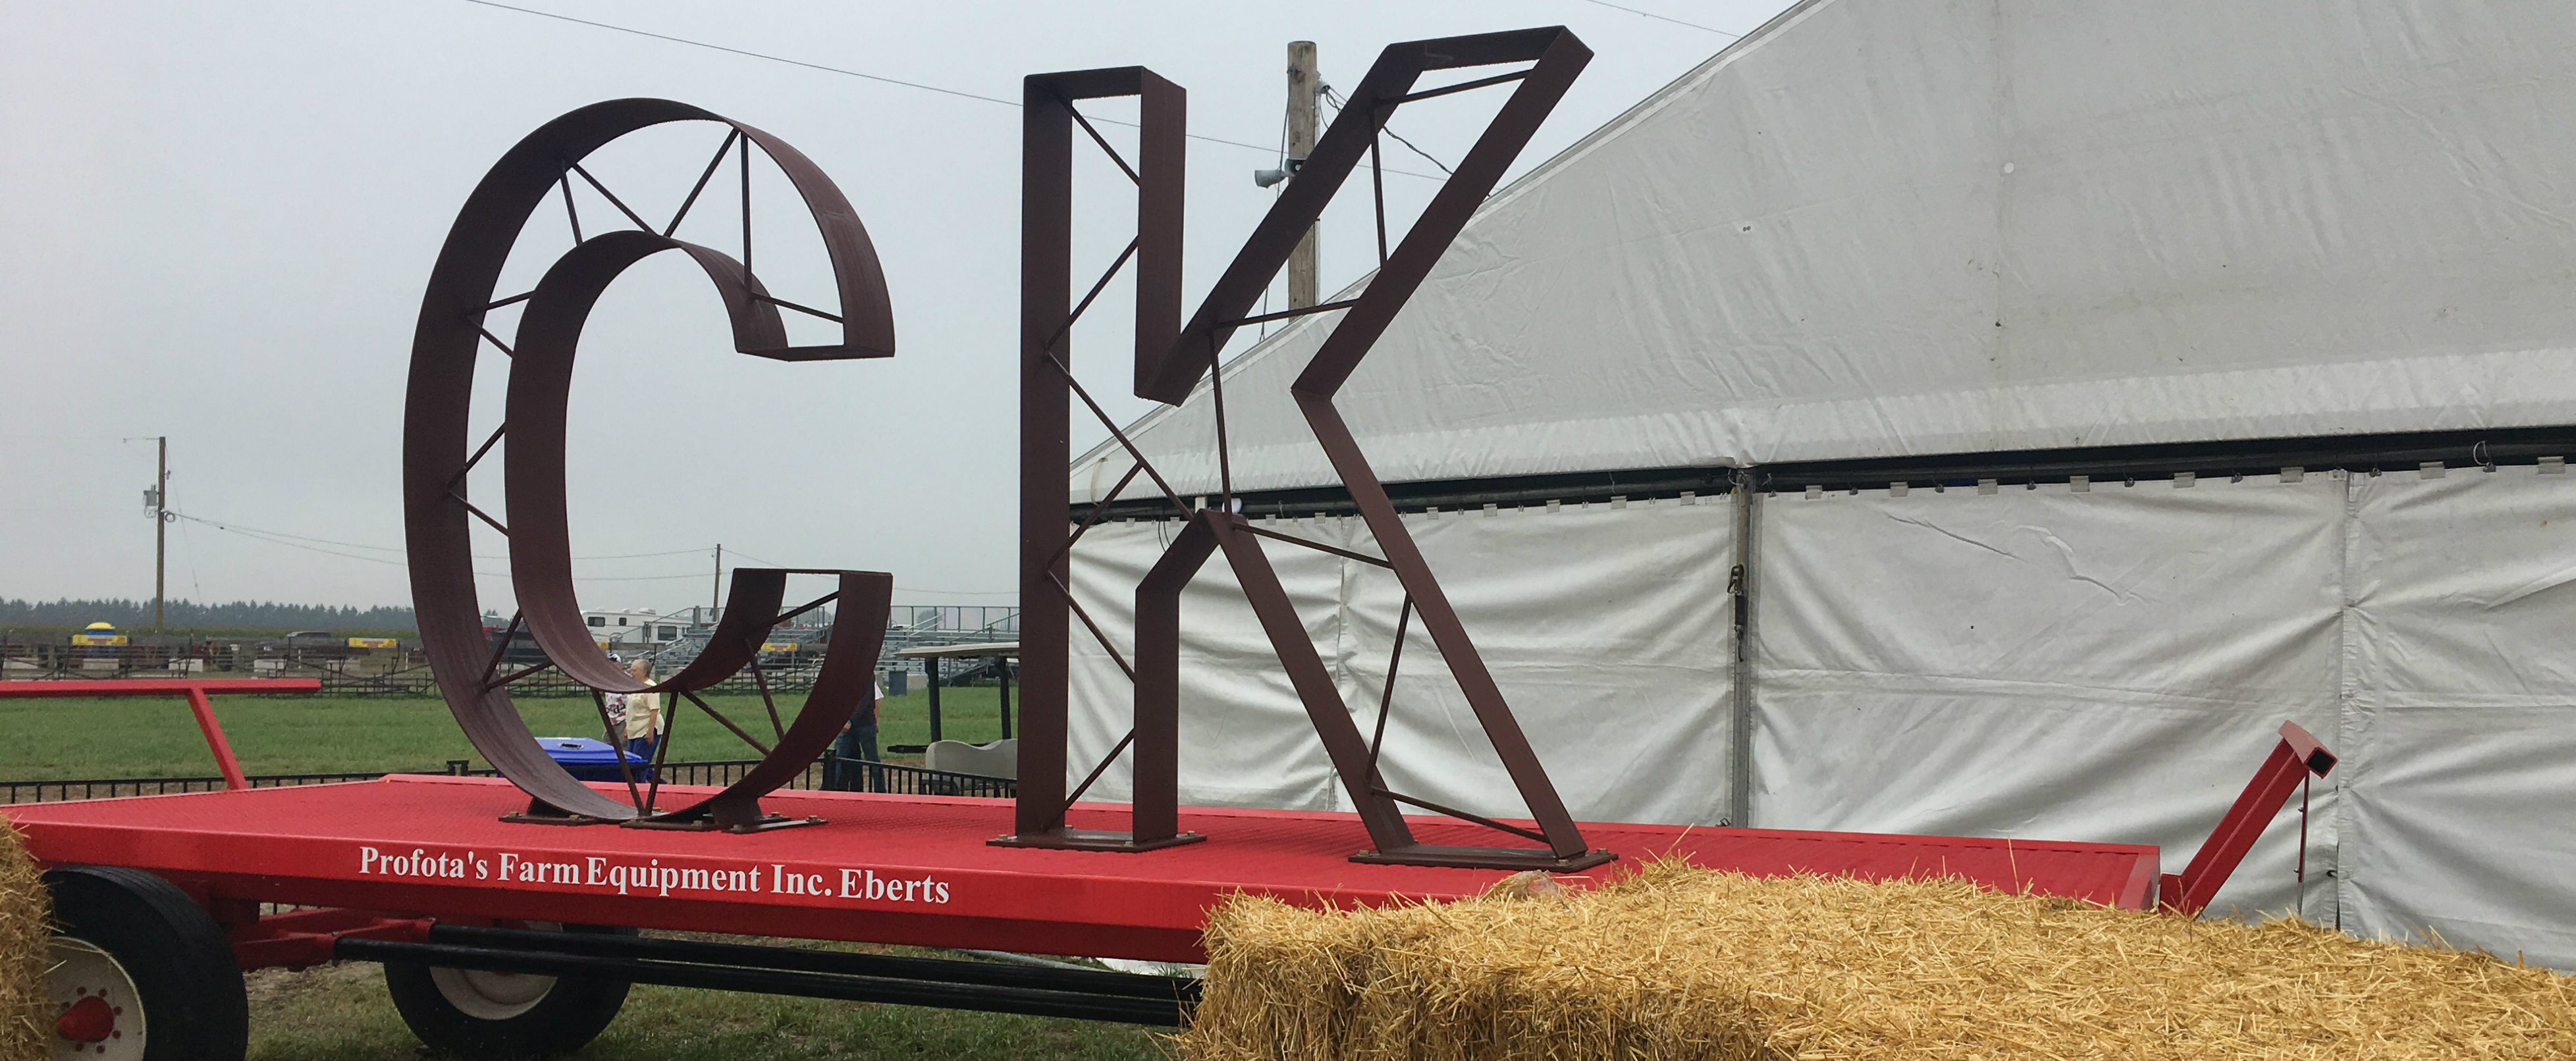 International Plowing Match opens in Chatham-Kent (GALLERY)